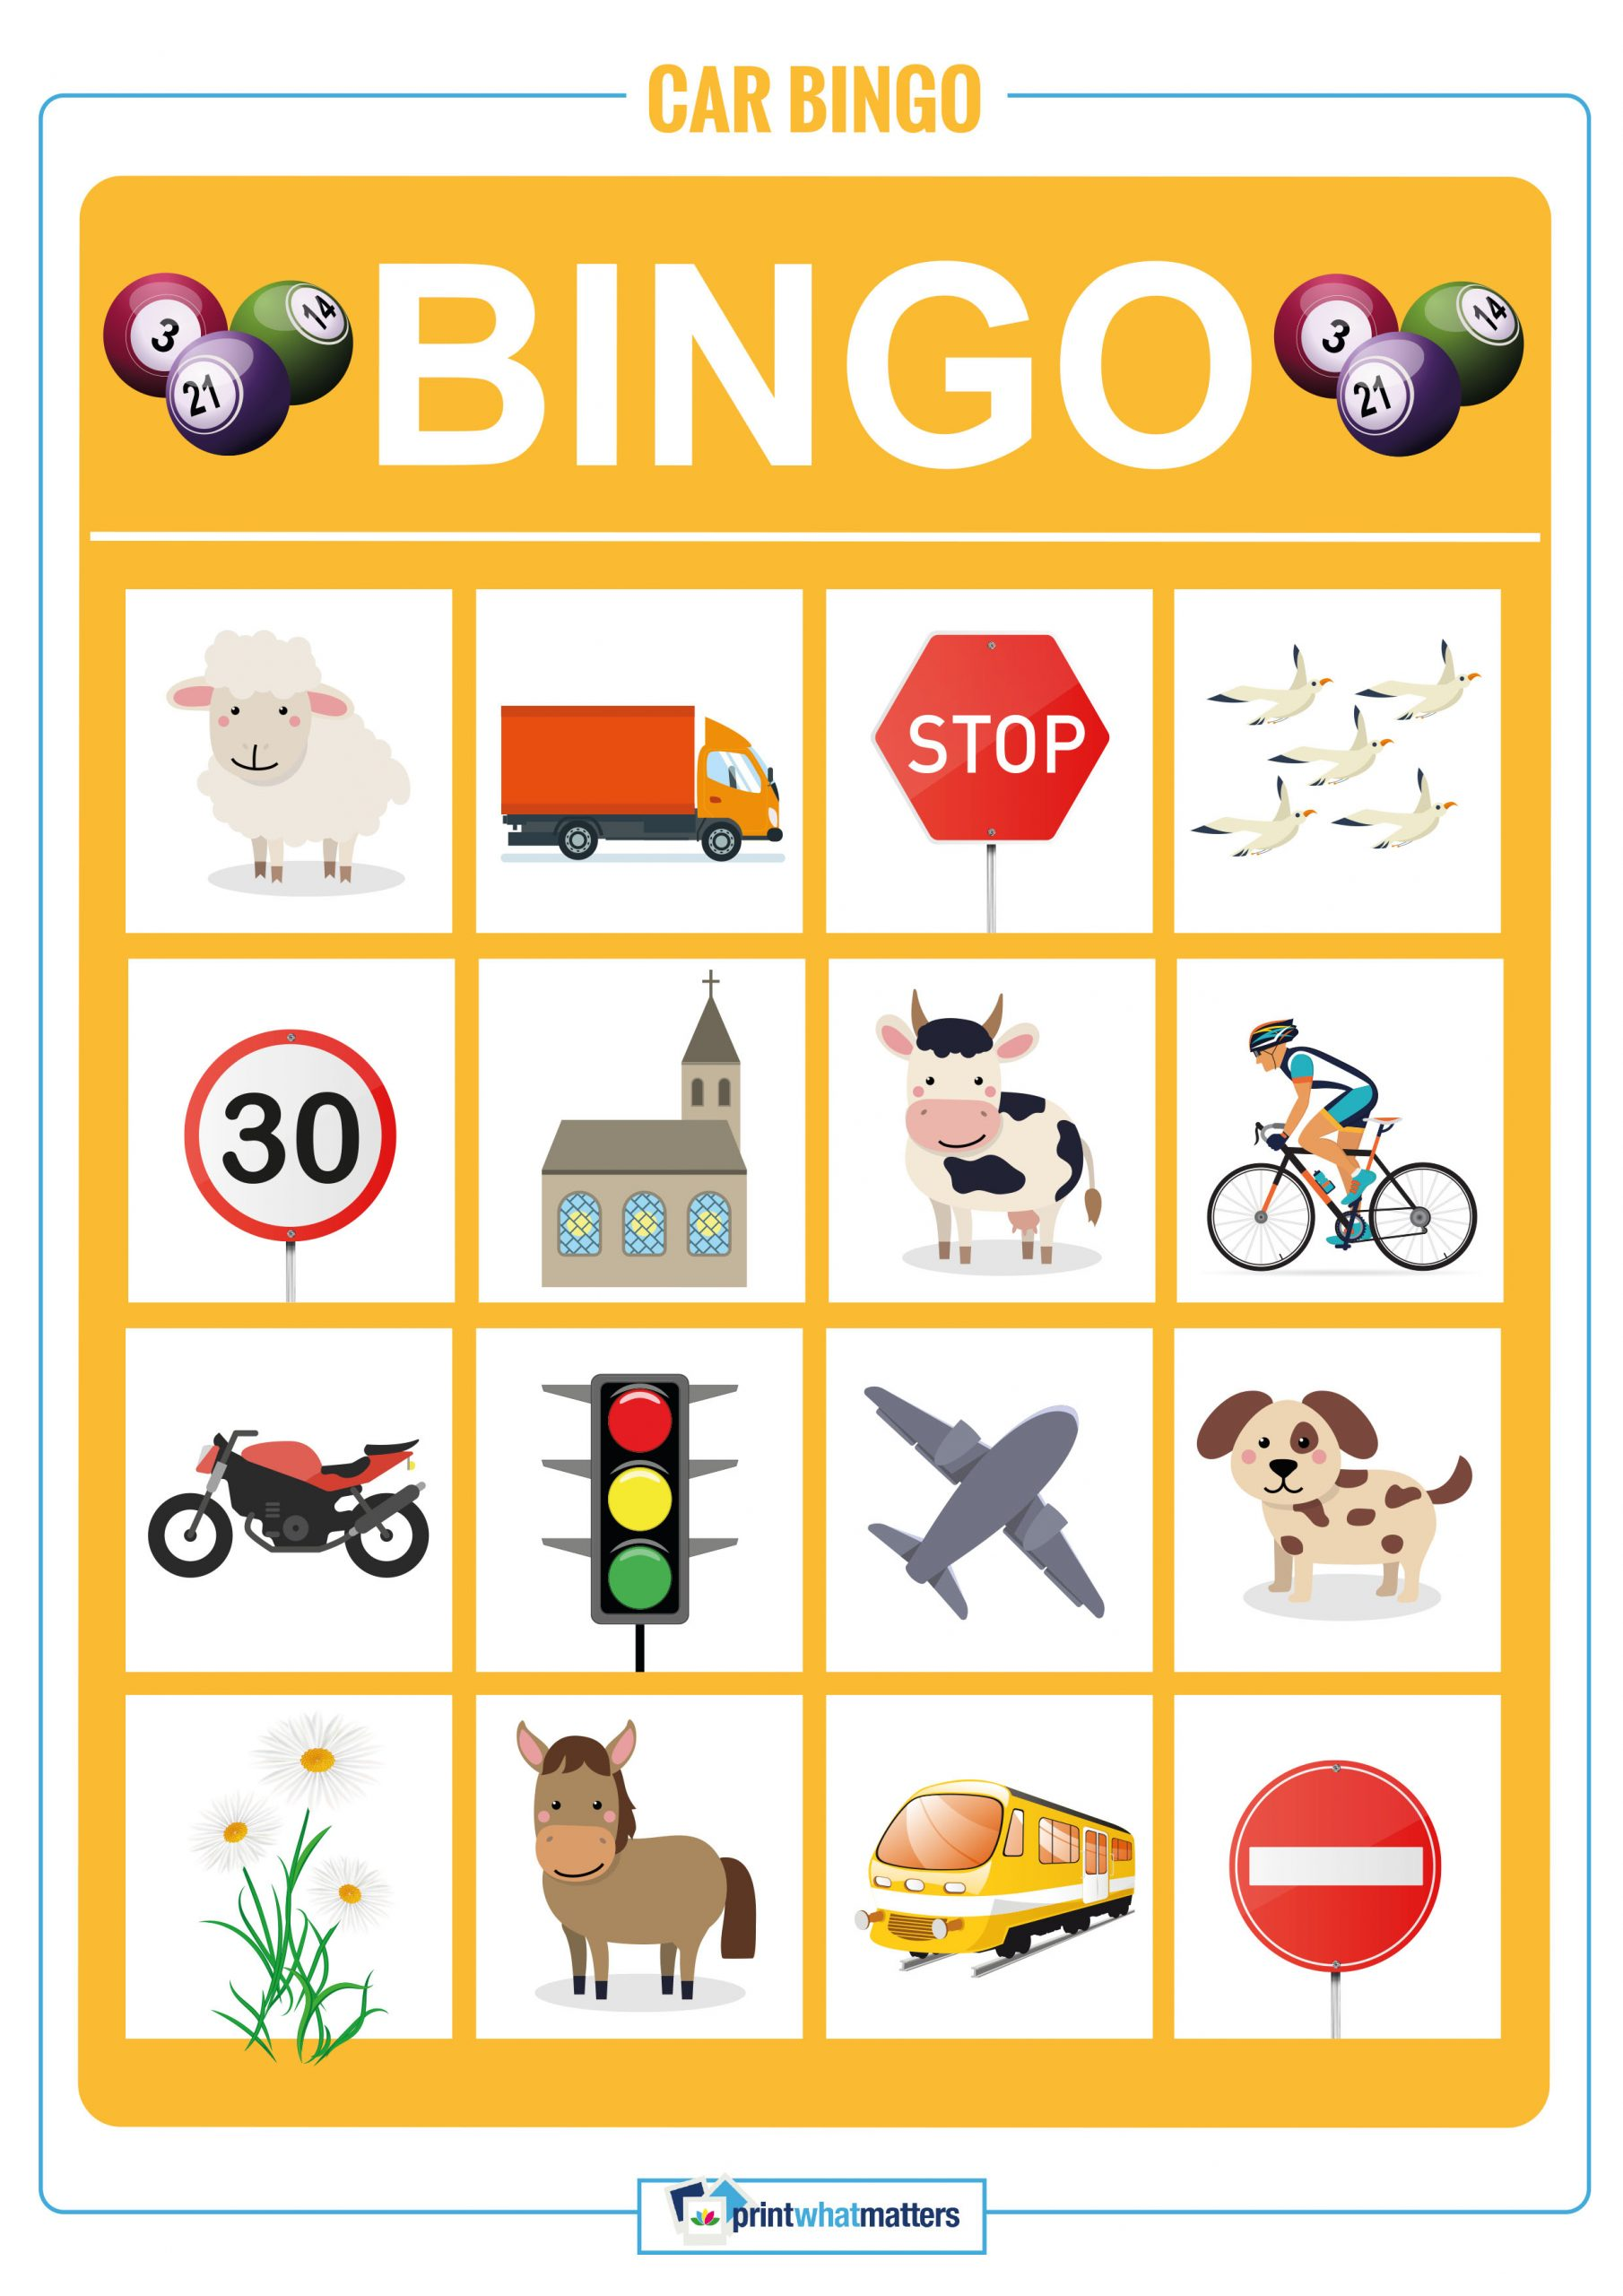 Car Bingo - Print What Matters